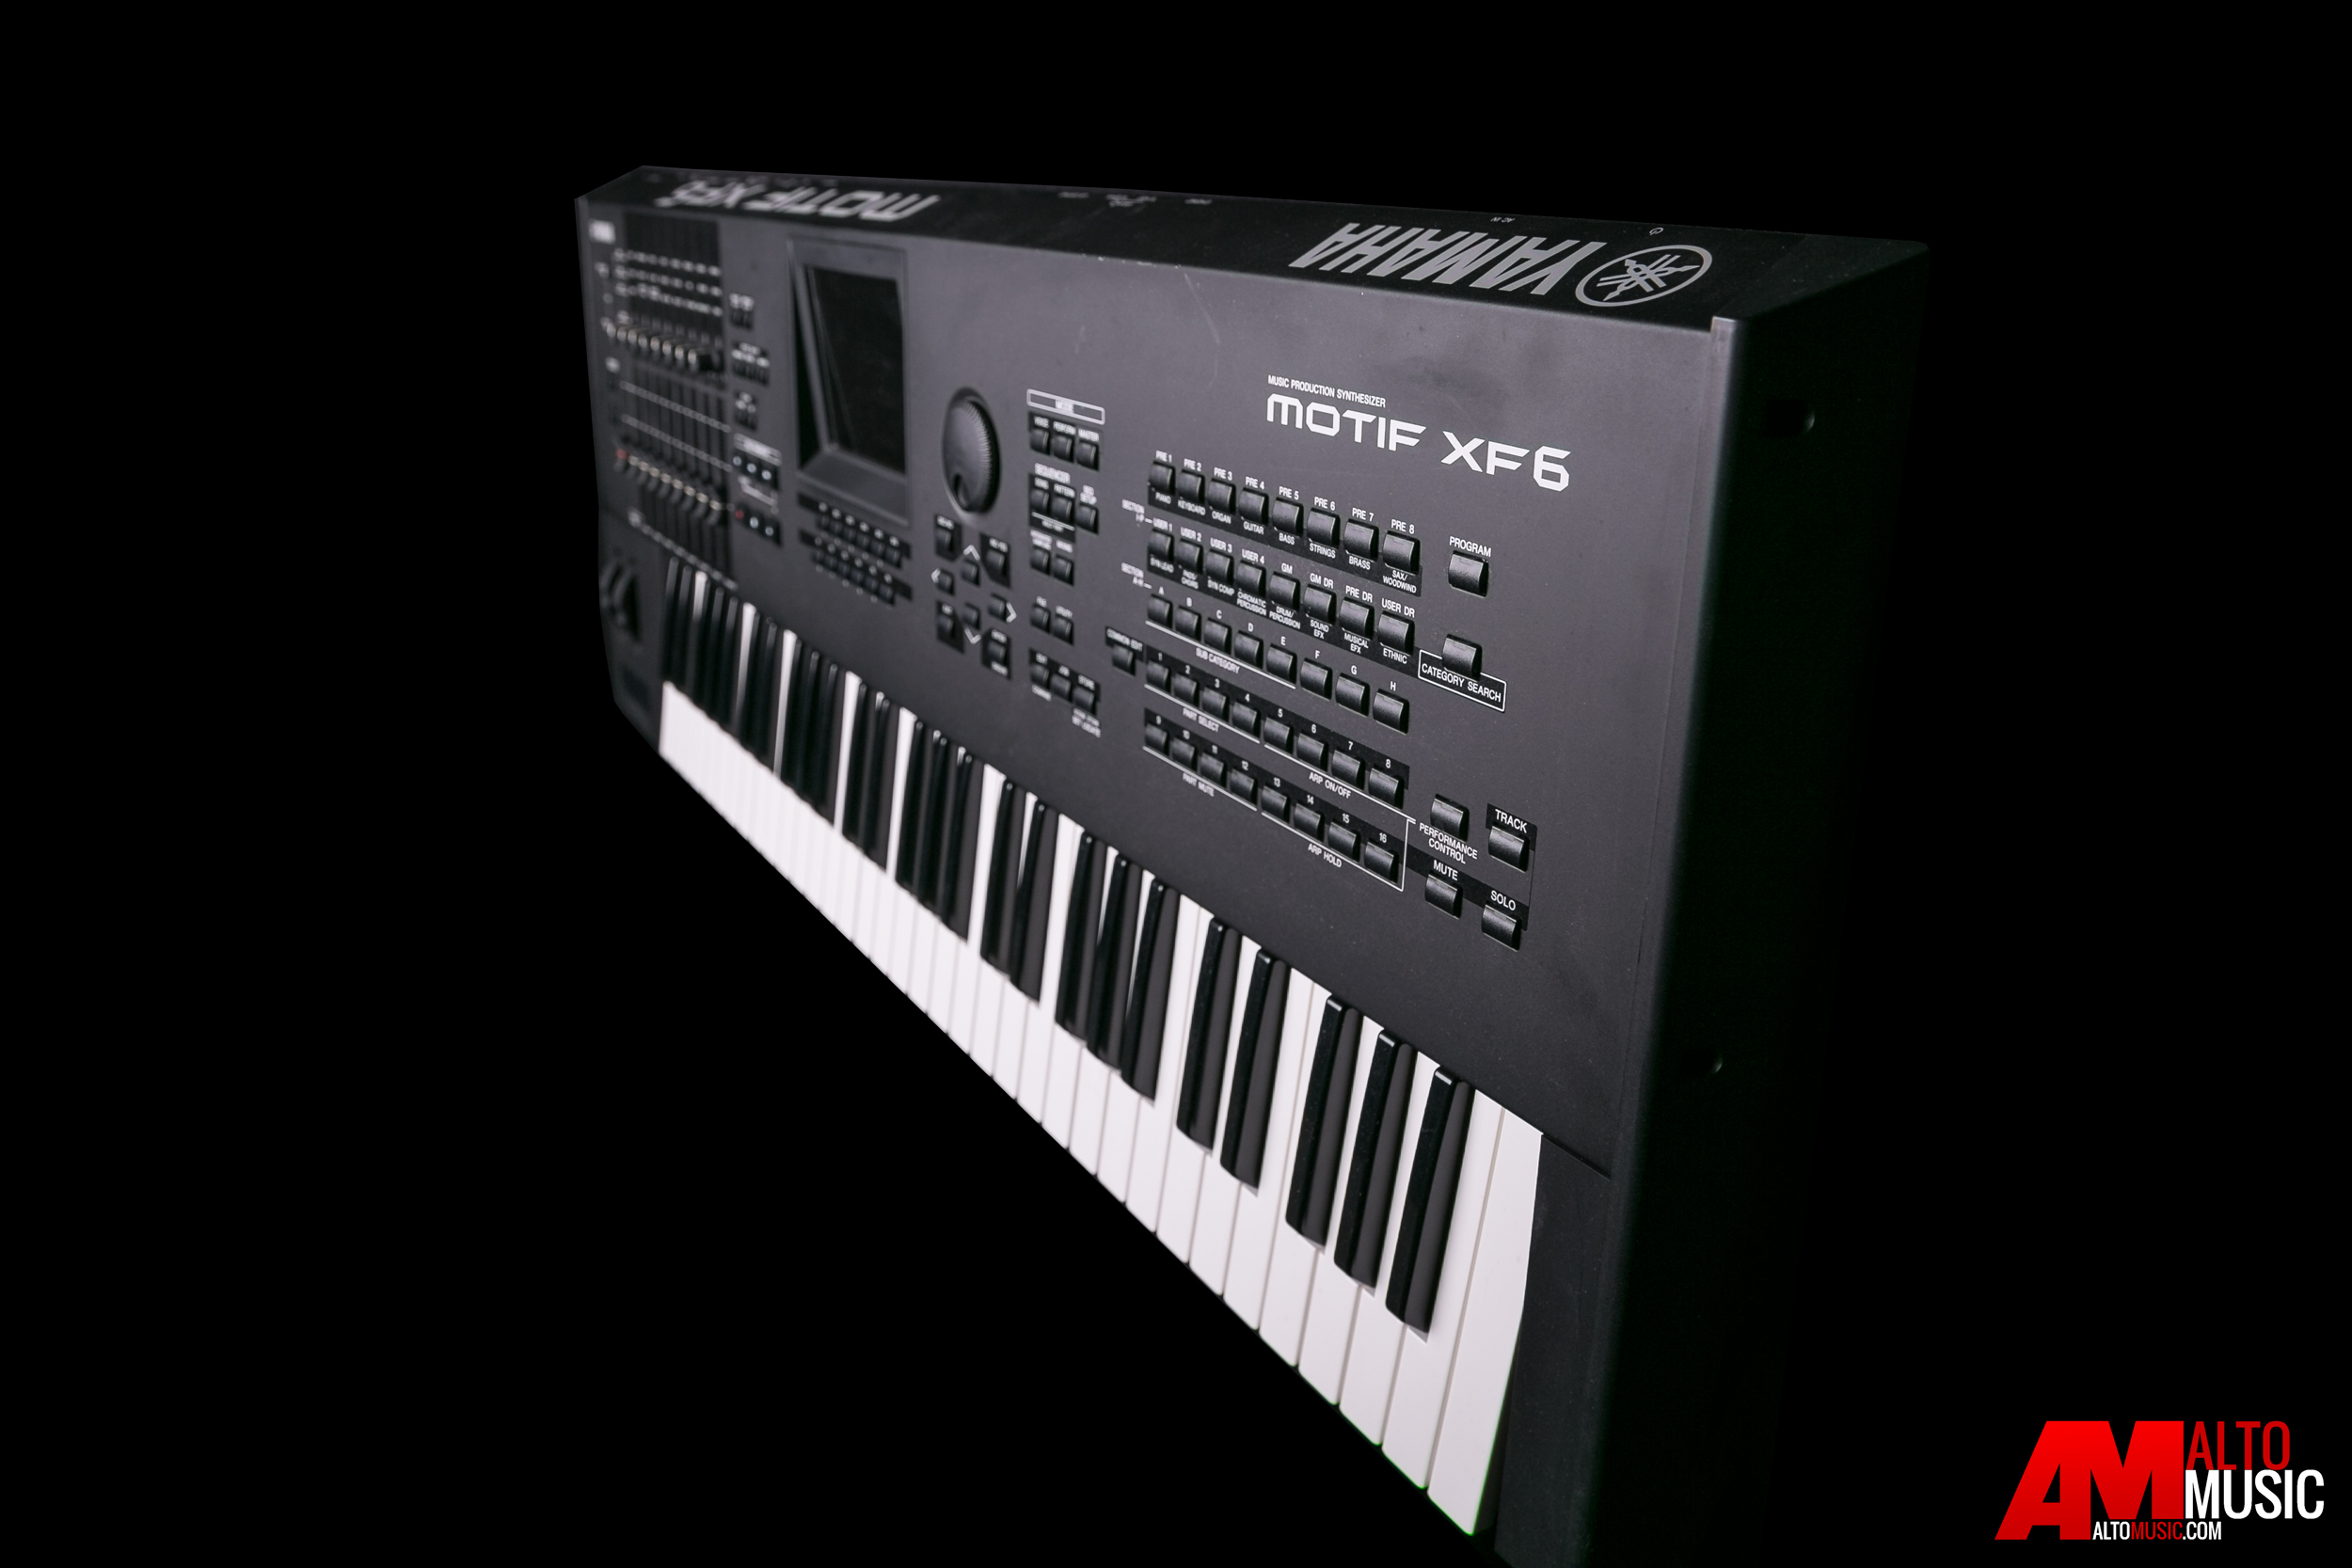 yamaha motif xf6 61 key synthesizer workstation preowned excellent condition ebay. Black Bedroom Furniture Sets. Home Design Ideas